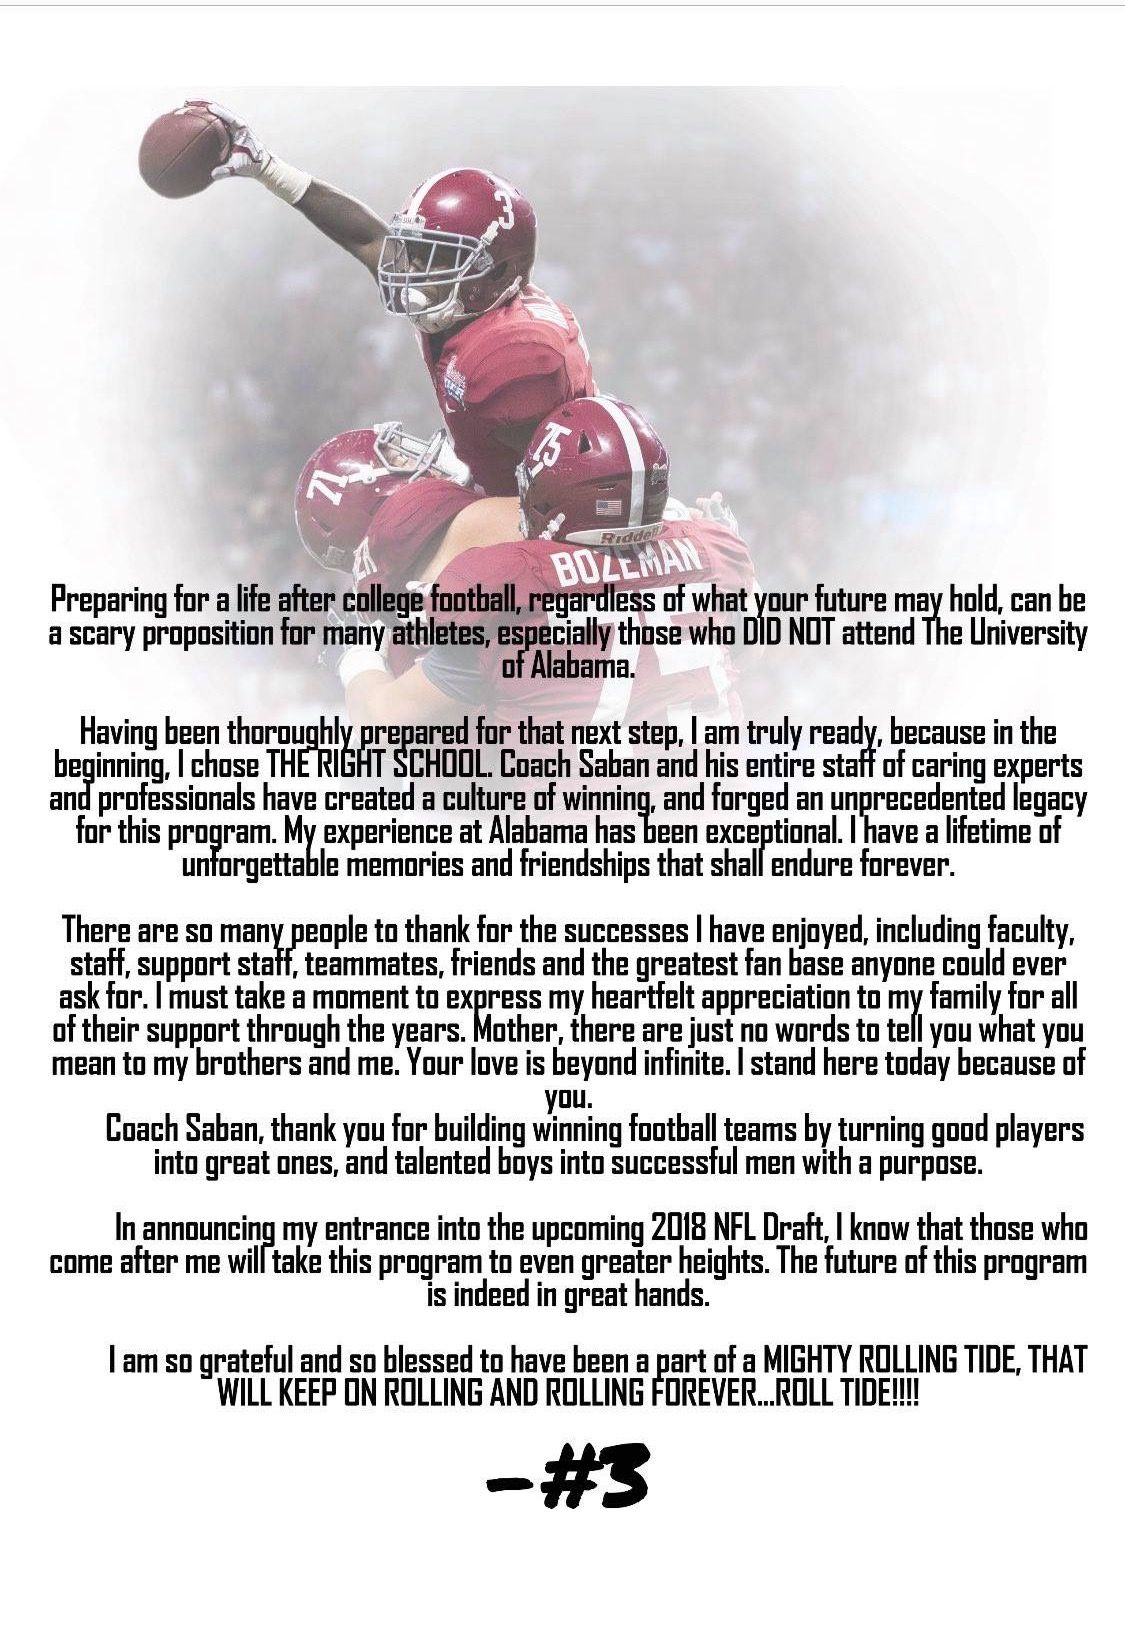 Calvin Ridley 3 Wr 2015 2017 The Ridler Life After College Alabama Crimson Tide Roll Tide